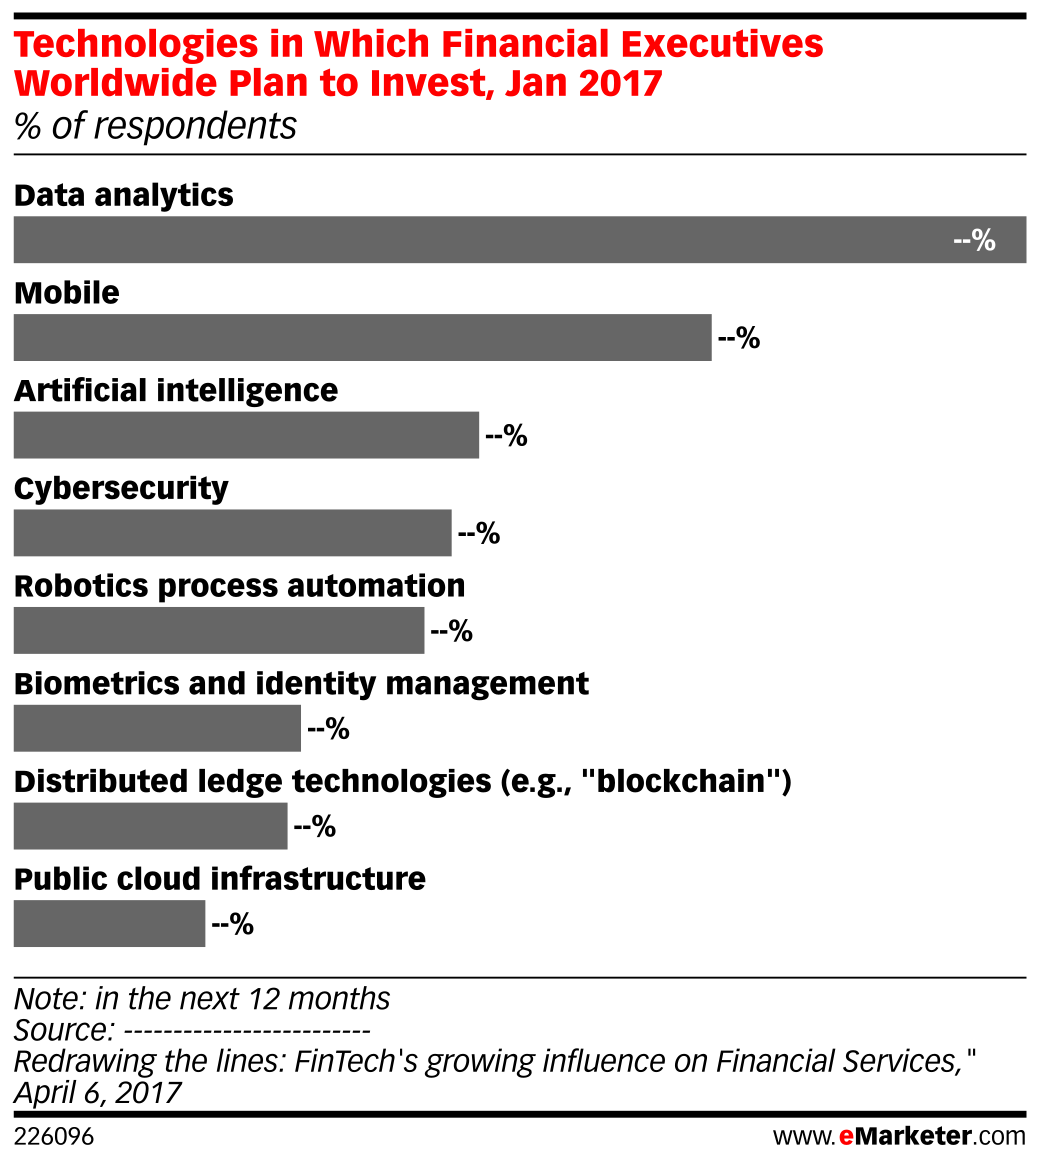 Technologies in Which Financial Executives Worldwide Plan to Invest, Jan 2017 (% of respondents)